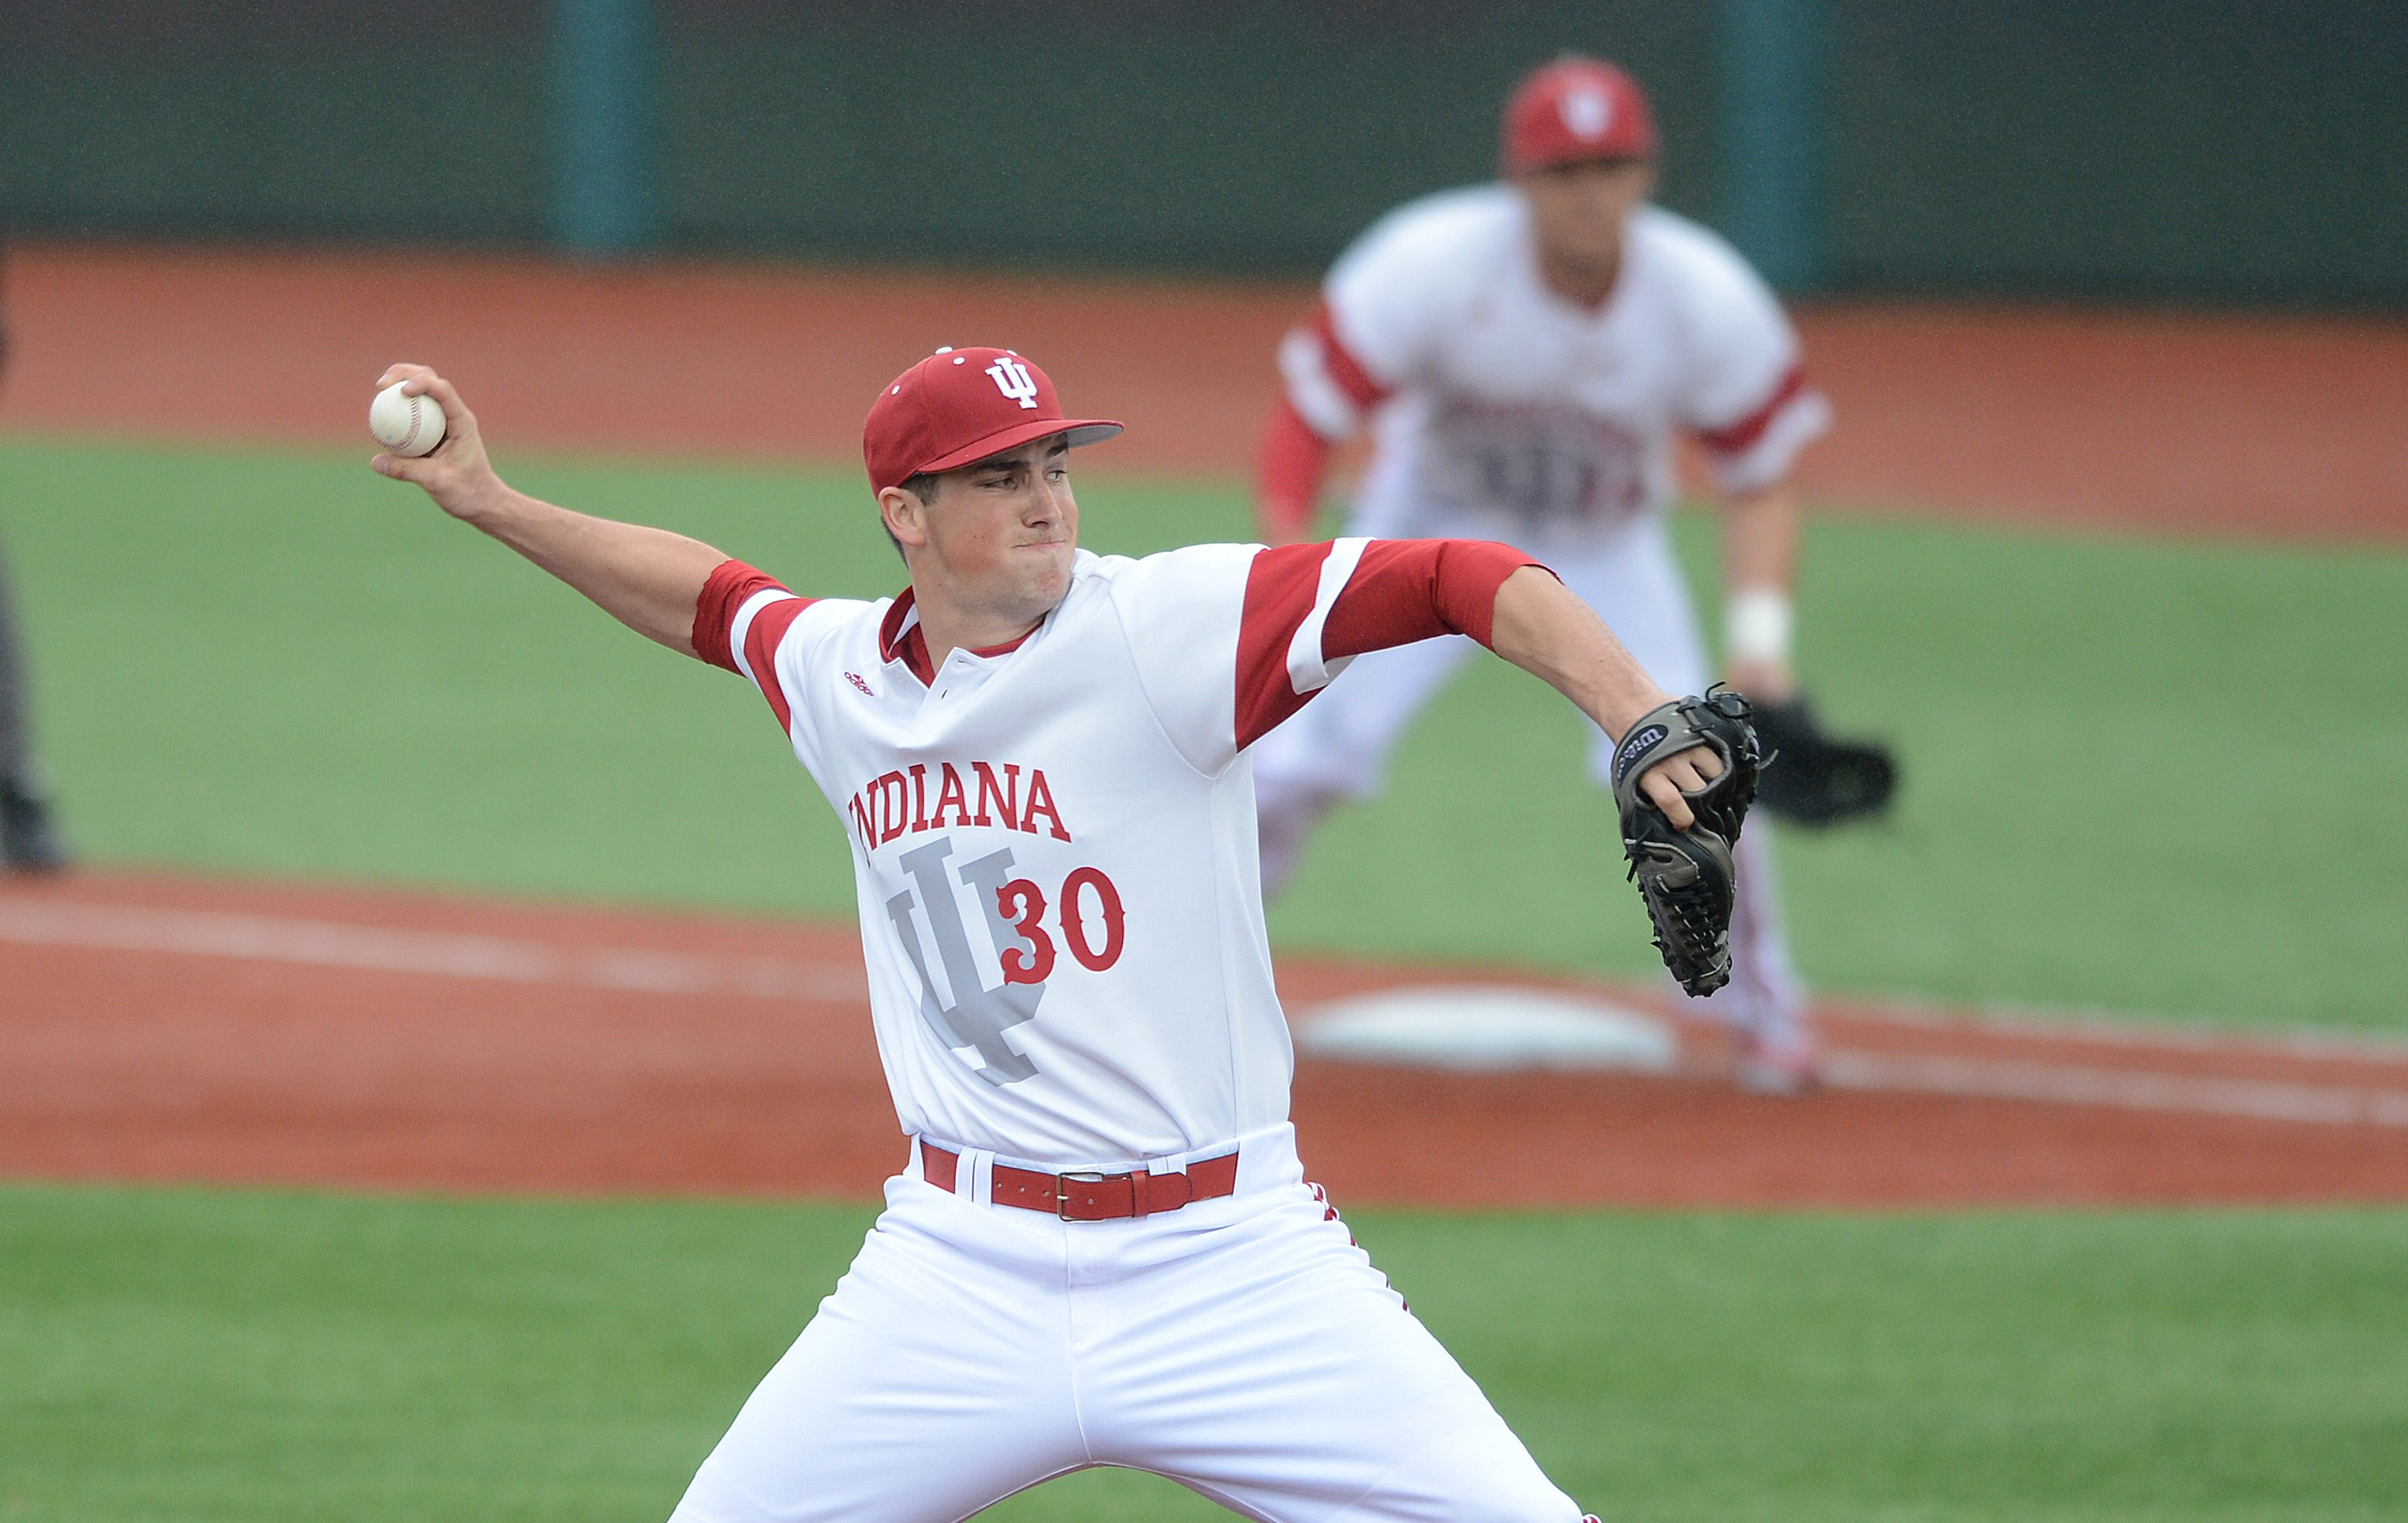 Indiana junior right-handed pitcher Brian Hobbie was named the Prospect League Pitcher of the Year. (Photo: IUHooisers.com)